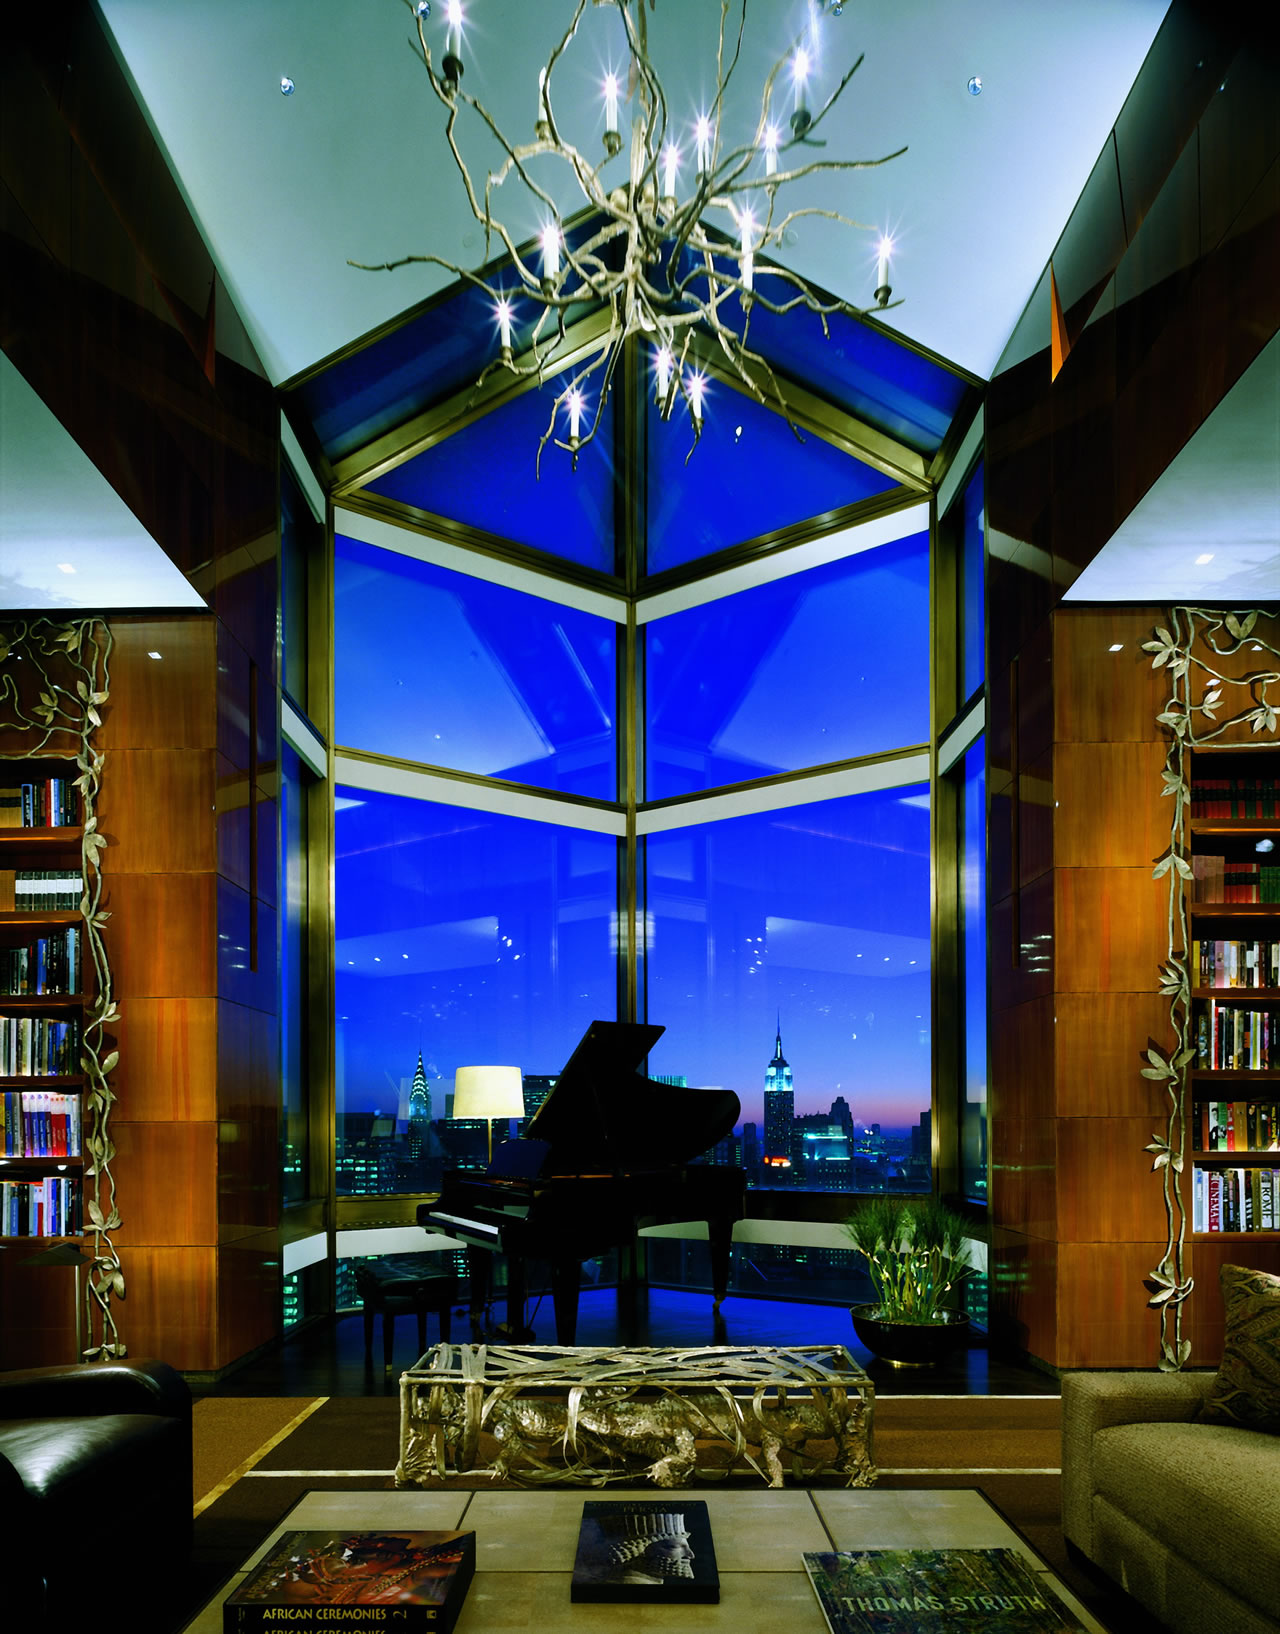 Top 10 most expensive hotel suites in the world 2011 the for Most expensive hotel in the world